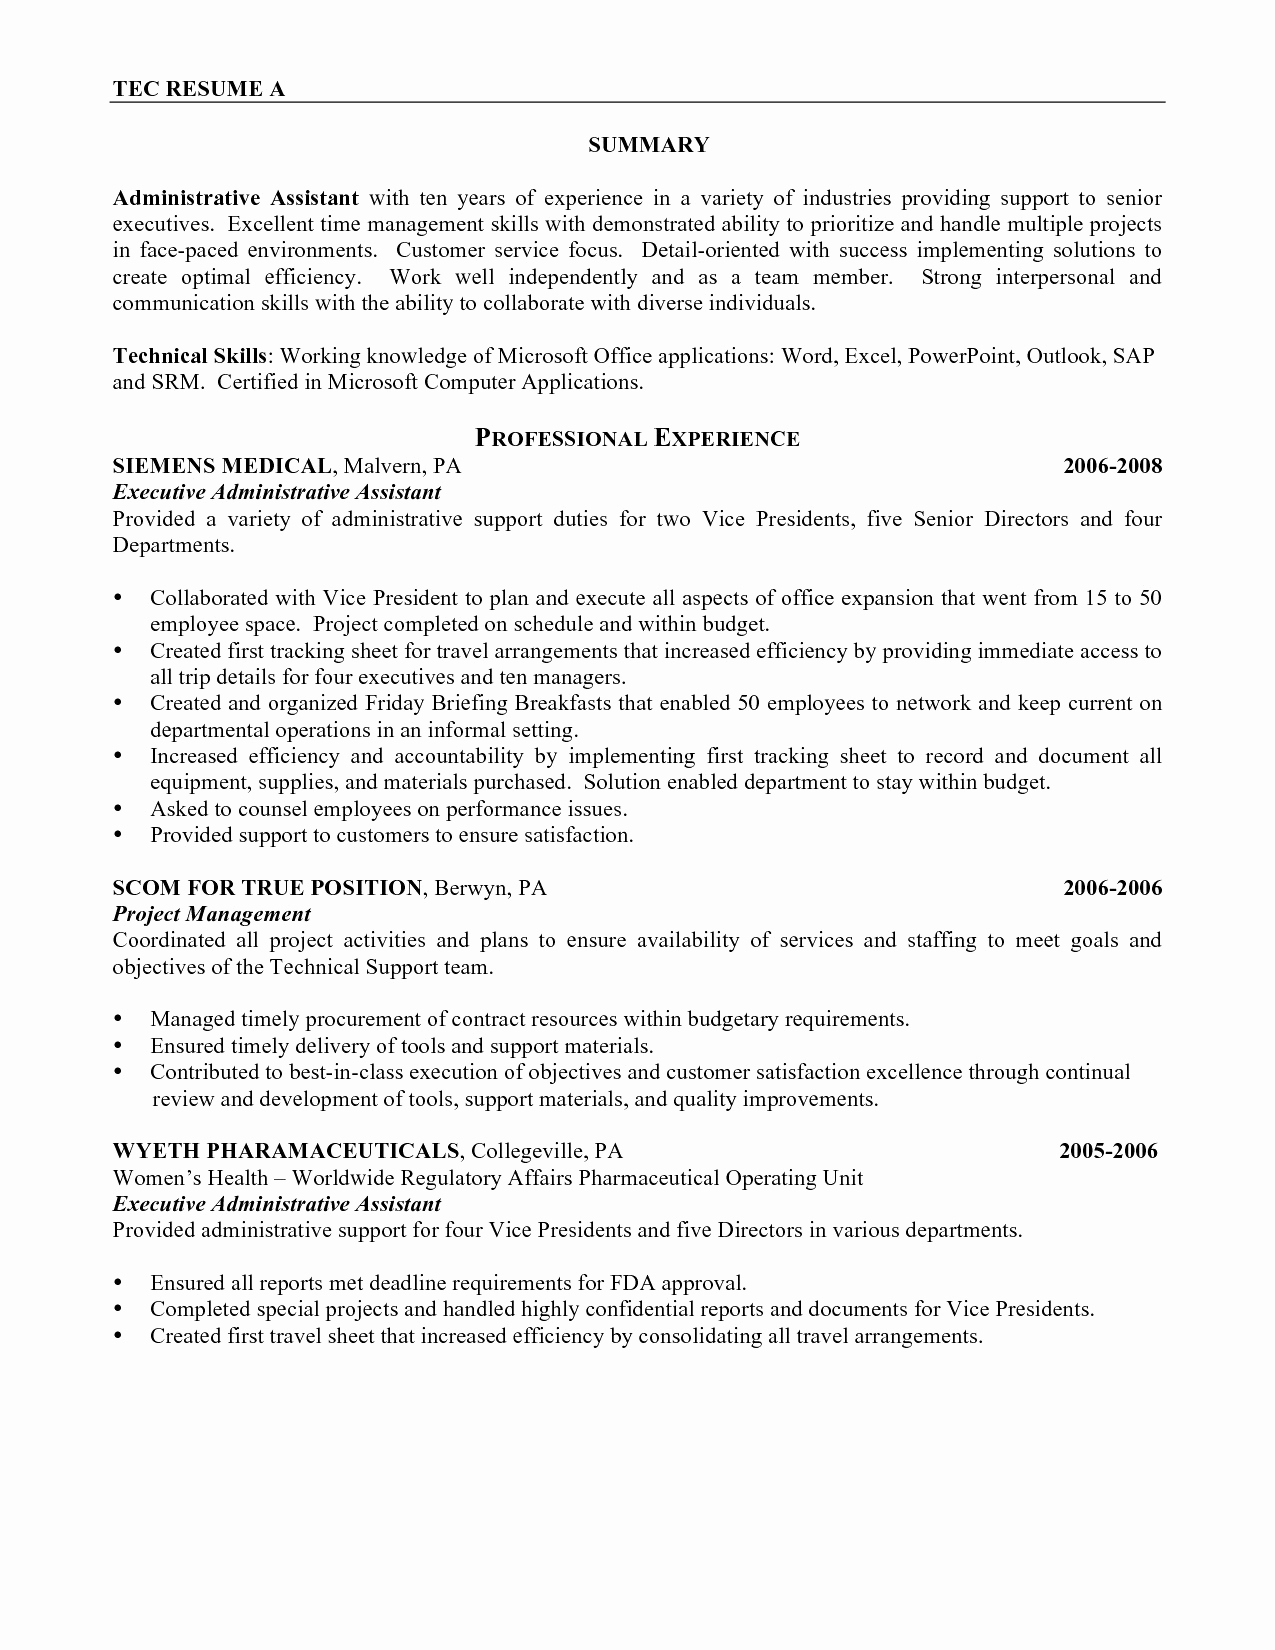 Medical Coder Resume Example - Medical Coding Resume Examples 20 Medical Coder Resume Samples